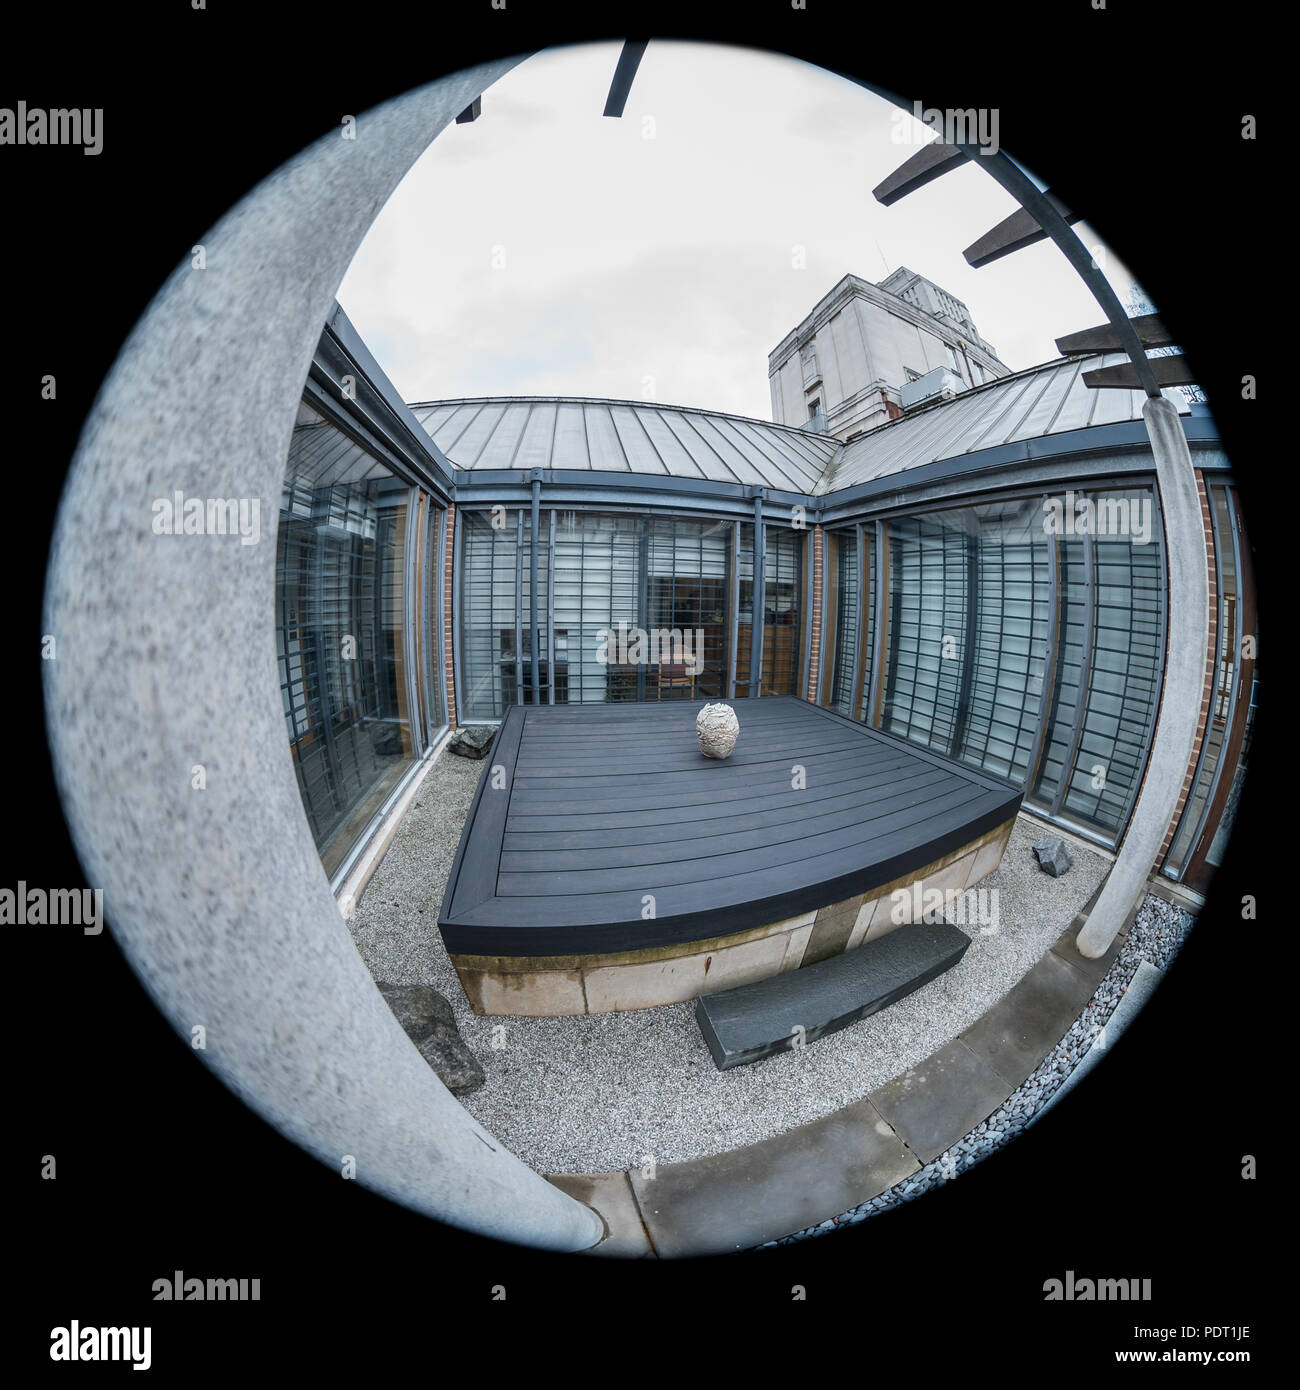 Brunei Gallery SOAS, London Stock Photo: 215043094 - Alamy